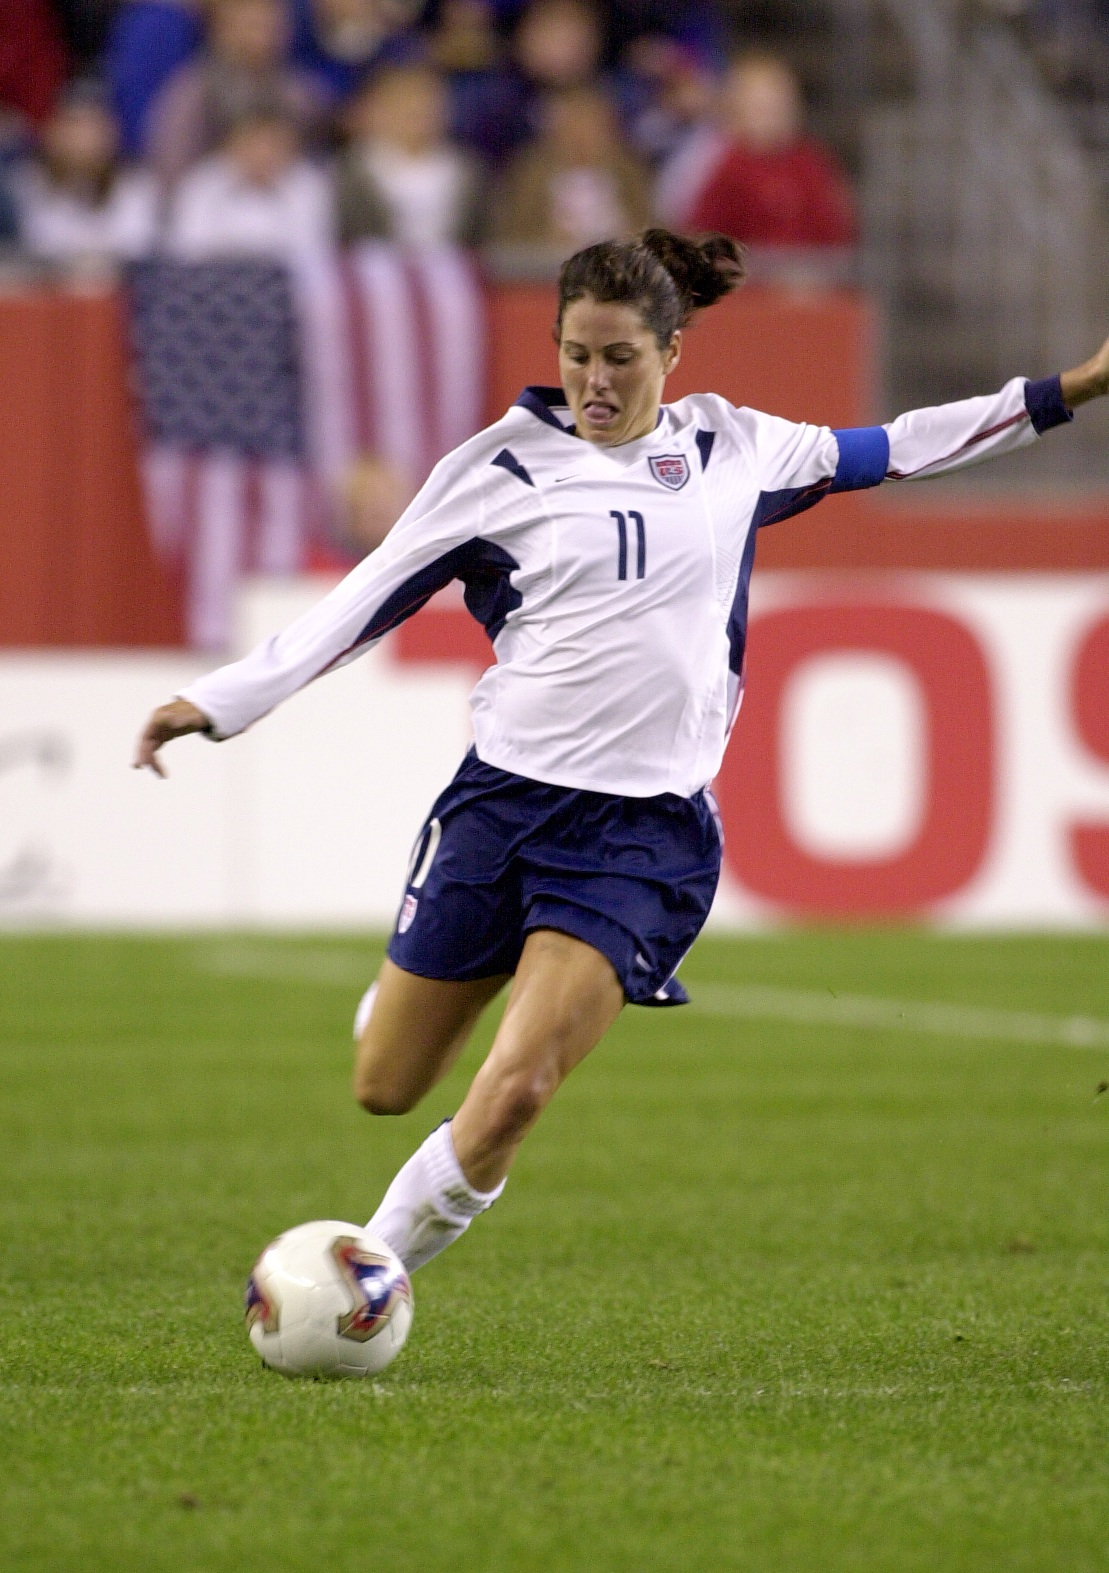 Julie Foudy - Two time FIFA World Cup champion, first American and first woman to receive the FIFA Fair Play Award, U.S. national women's team captain, 4 time Olympic gold medalist